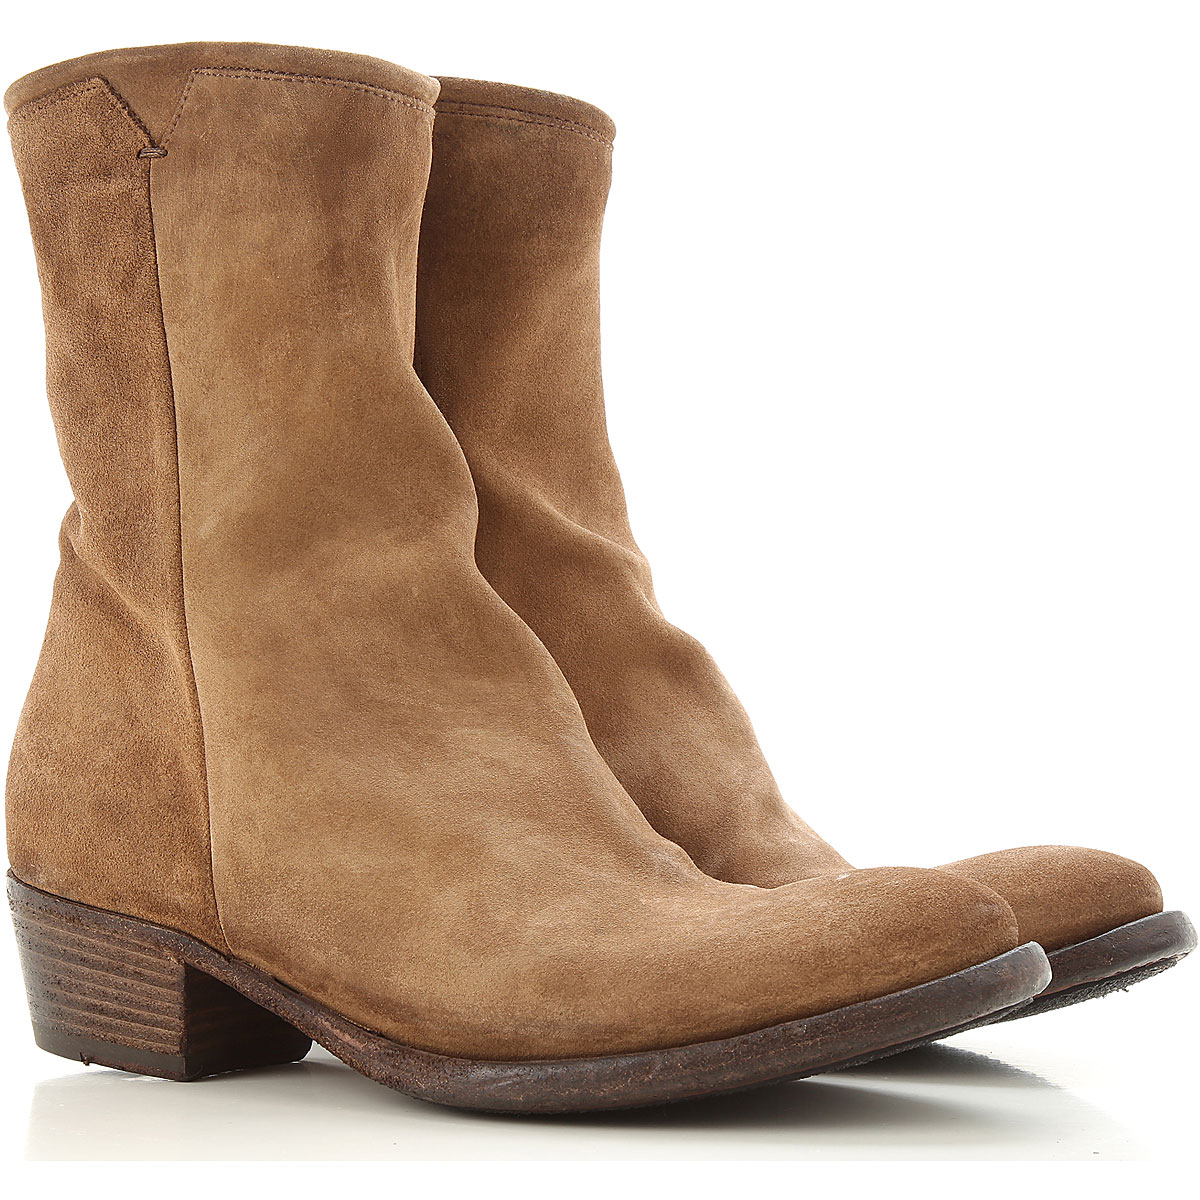 Pantanetti Boots for Women, Booties On Sale, Brown, suede, 2019, 6 7 8 9